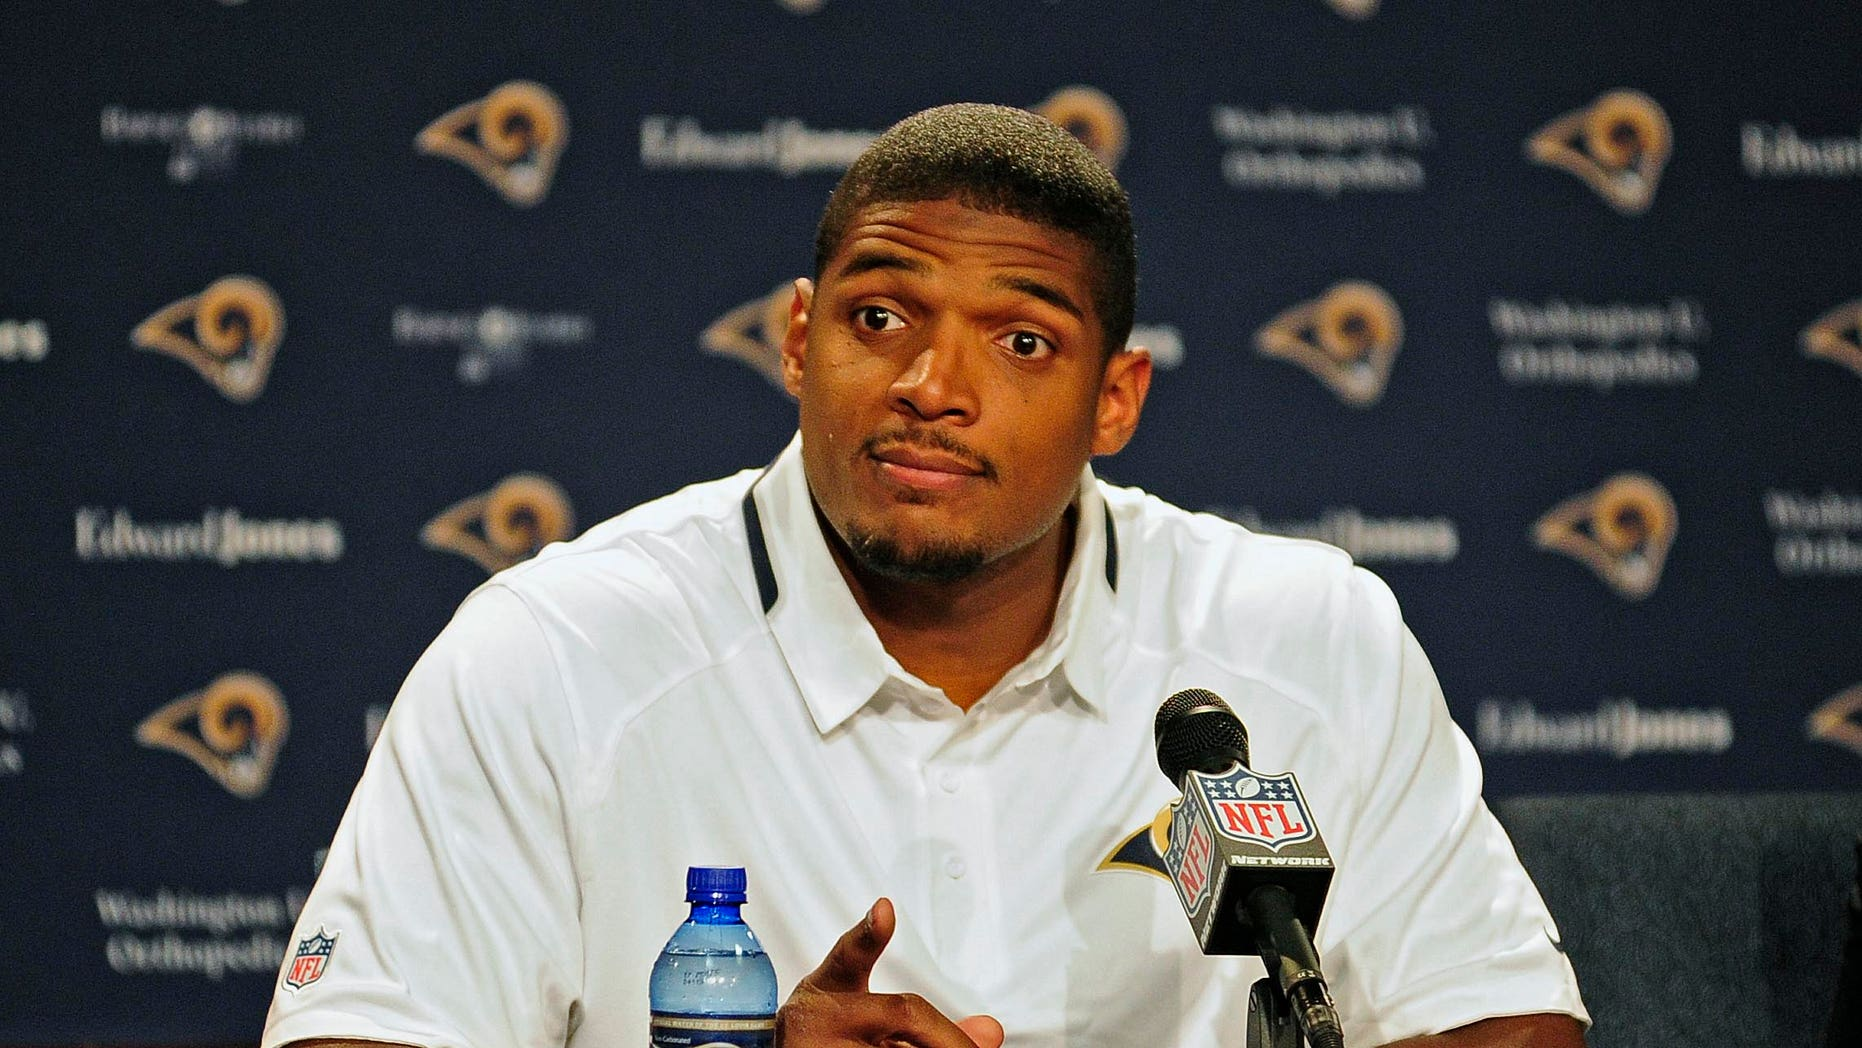 May 13, 2014. St. Louis Rams seventh round pick defensive end Michael Sam talks with the media during a press conference at Rams Park.